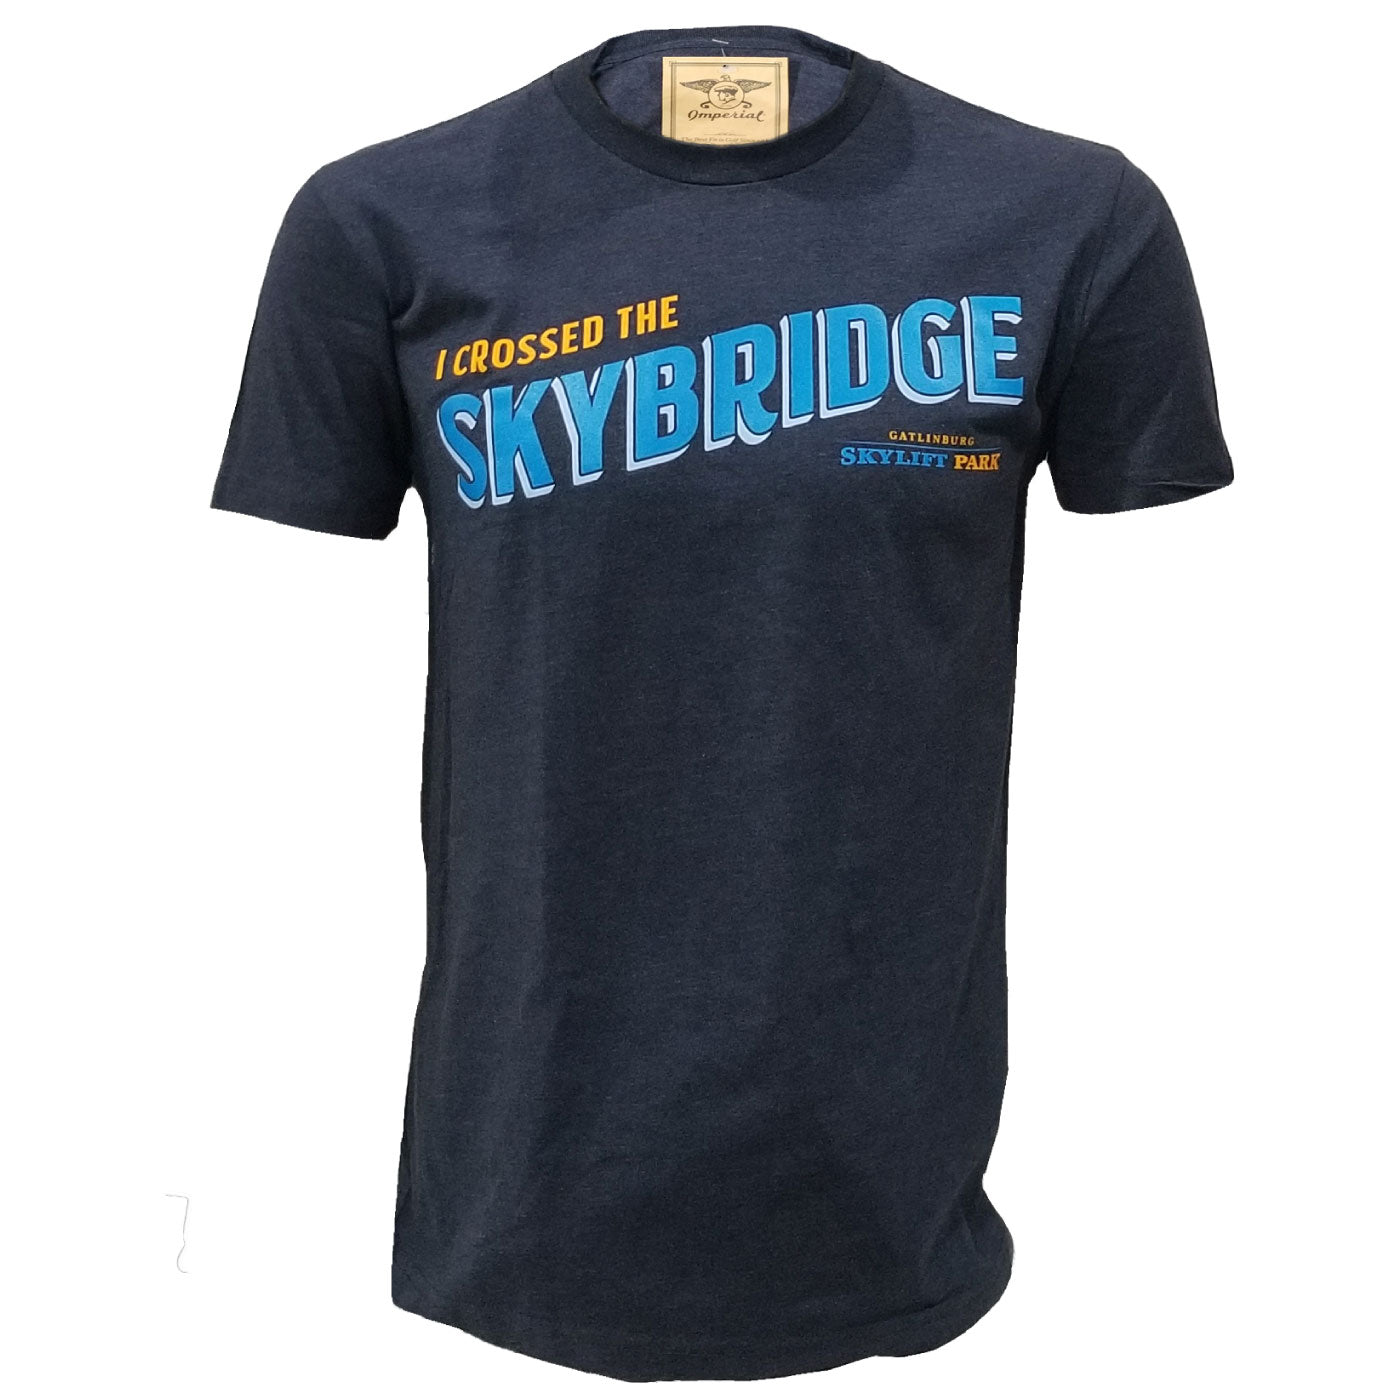 I Crossed the SkyBridge in Gatlinburg Artwork Tee